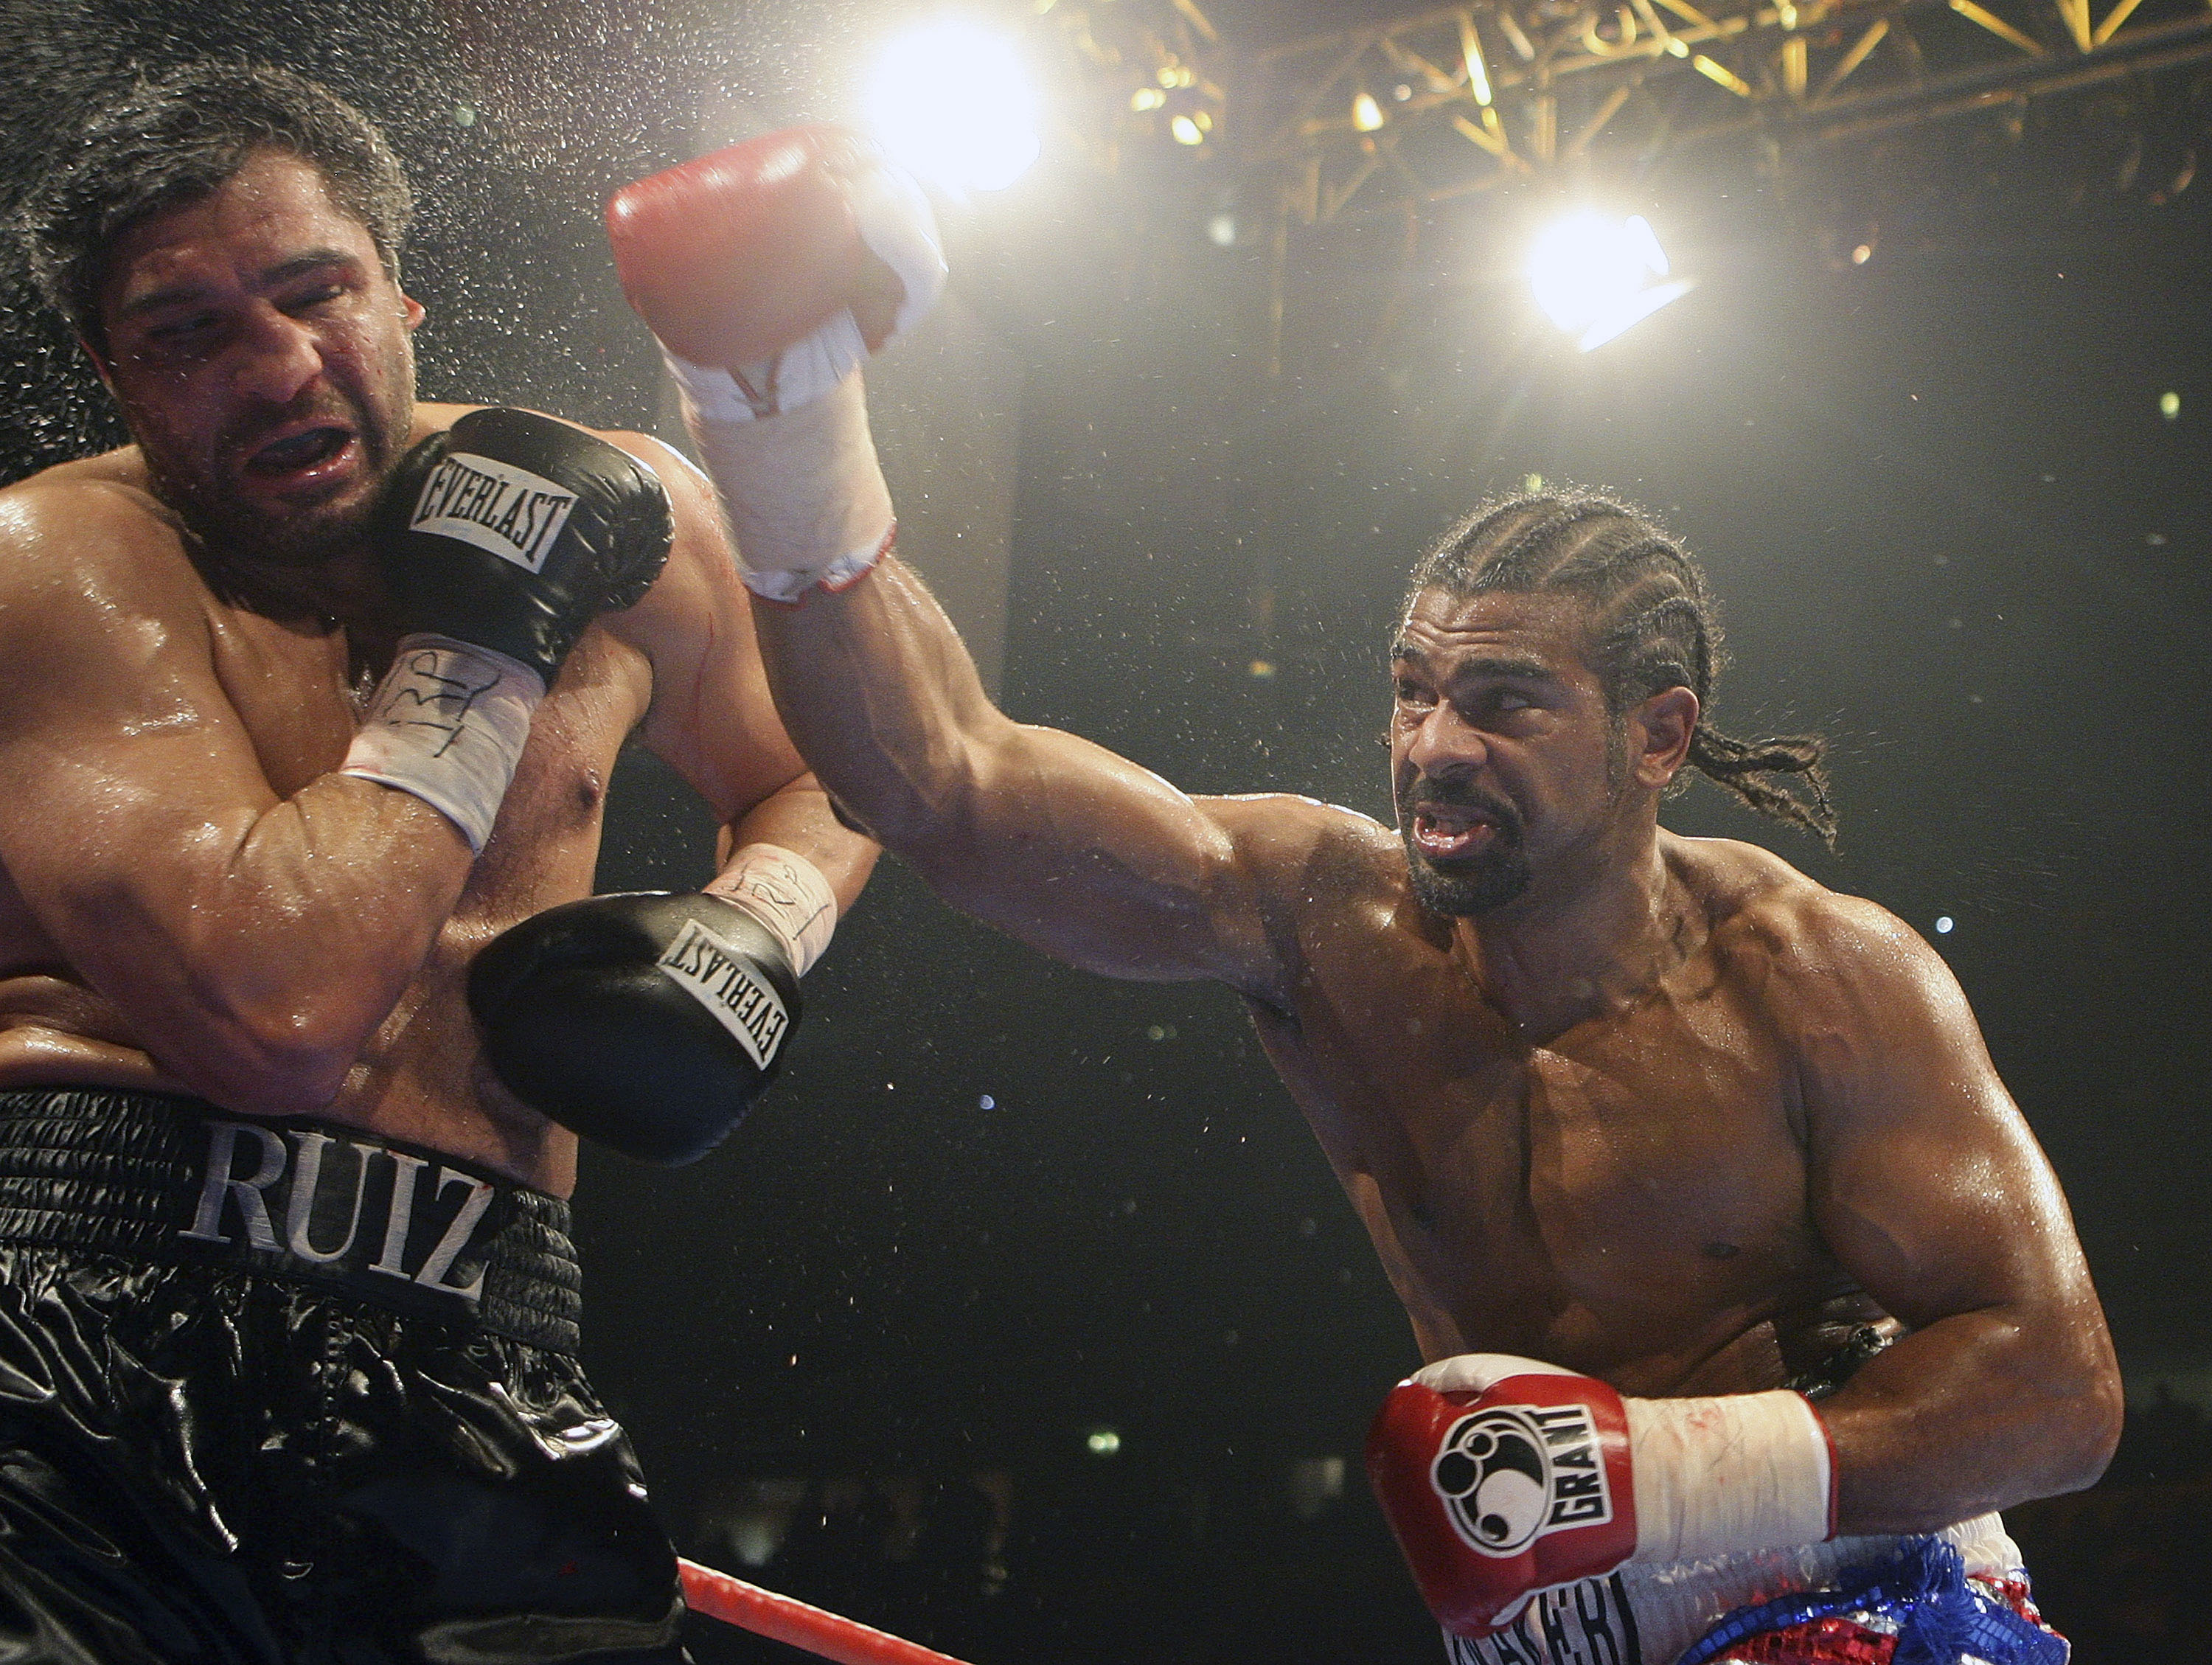 Britain's David Haye, right, throws a punch at John Ruiz of the USA, during their WBA Heavyweight World Championship boxing match at the MEN Arena in ...